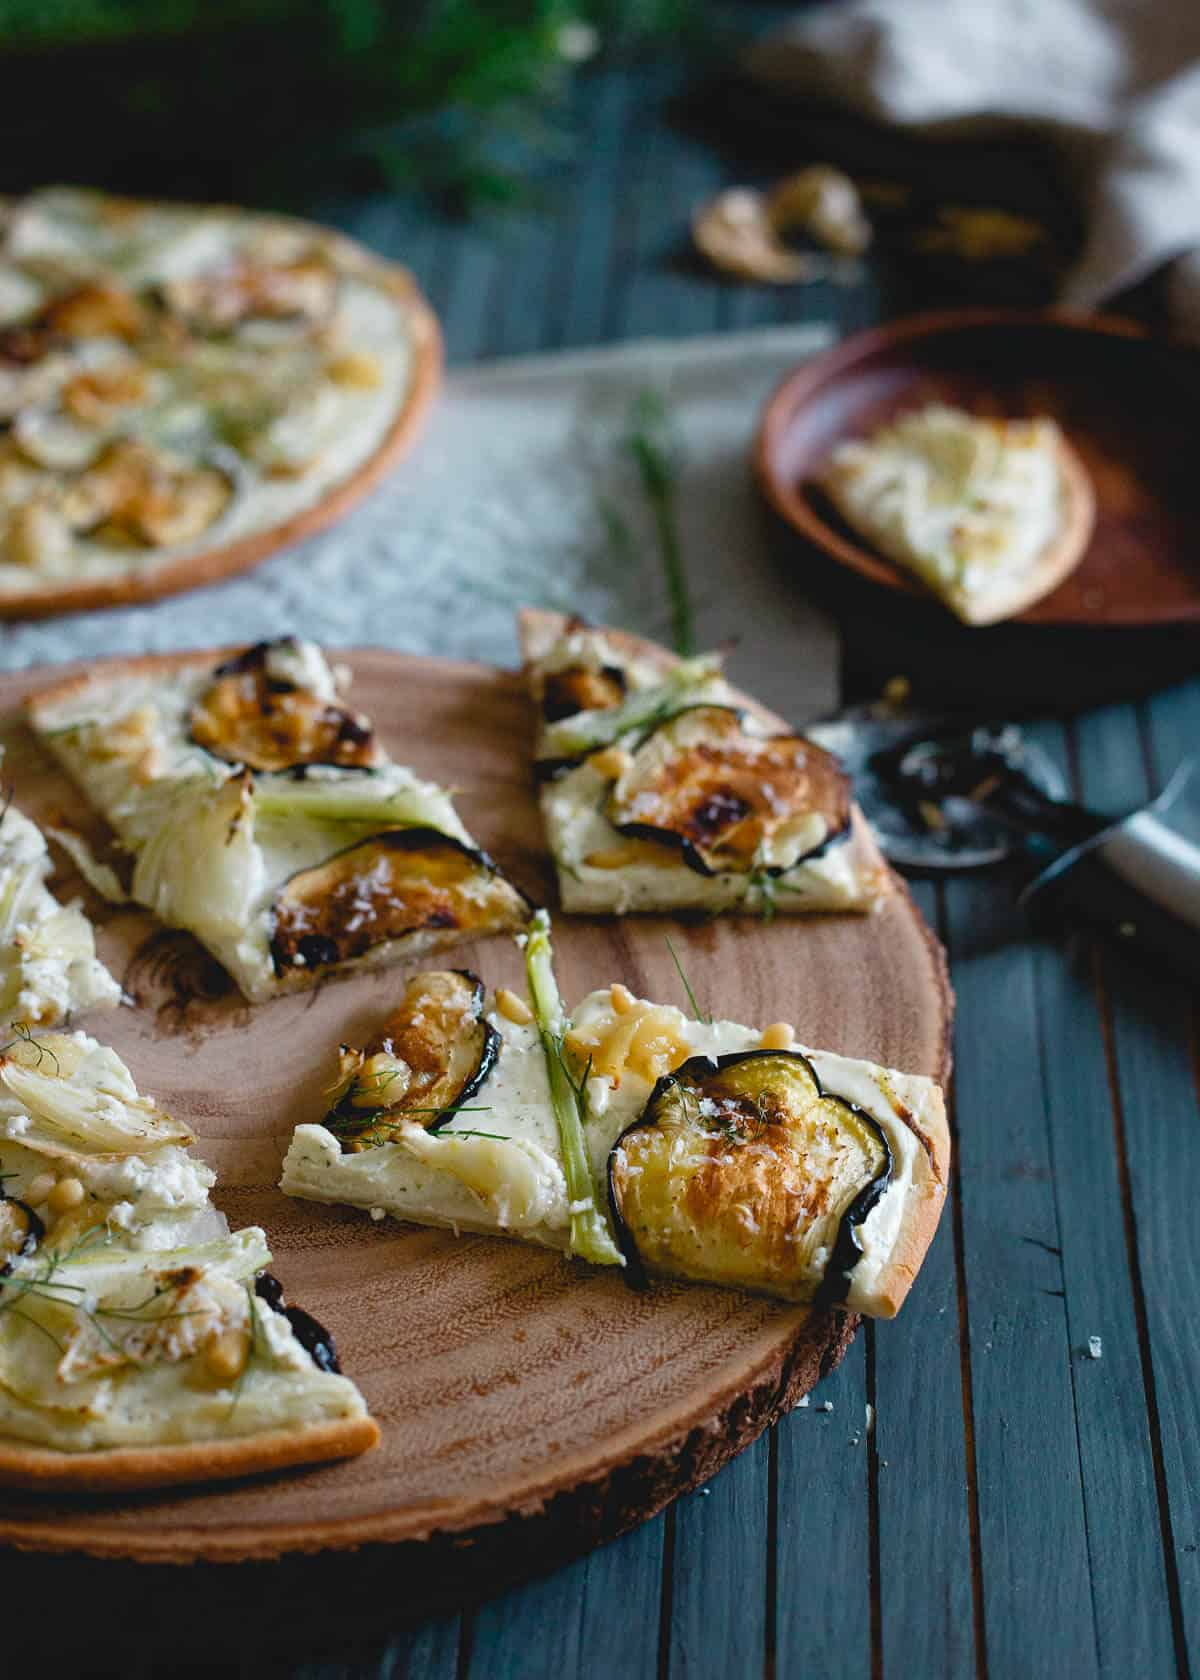 If you love white pizza, you'll love this roasted eggplant fennel pizza! It has a whipped feta and ricotta base with toasted pine nuts, creamy roasted garlic cloves and an olive oil drizzle to top it off.